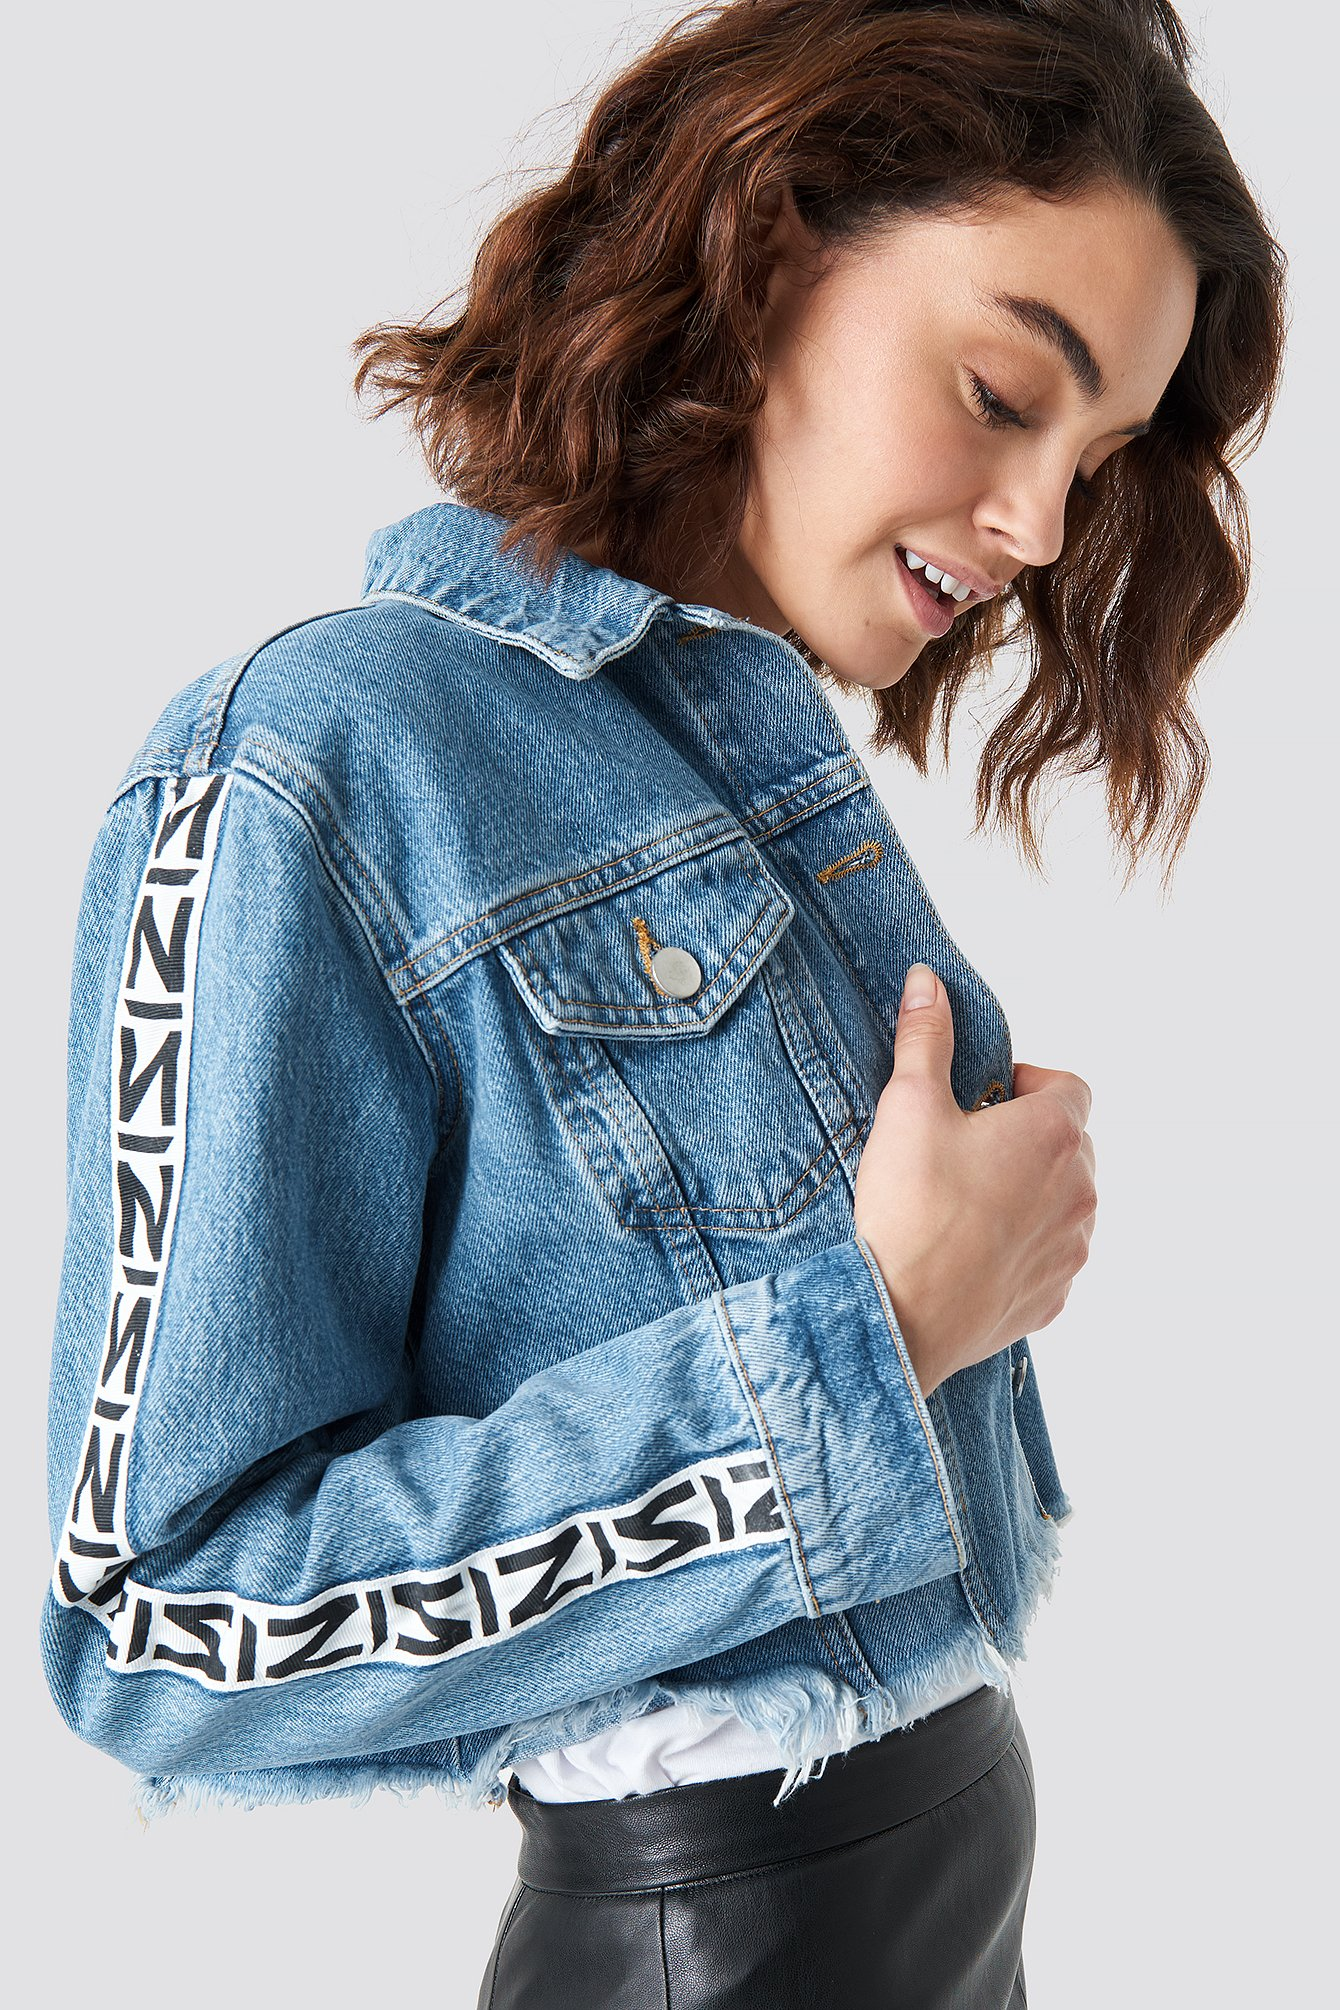 N Branded Denim Jacket NA-KD.COM